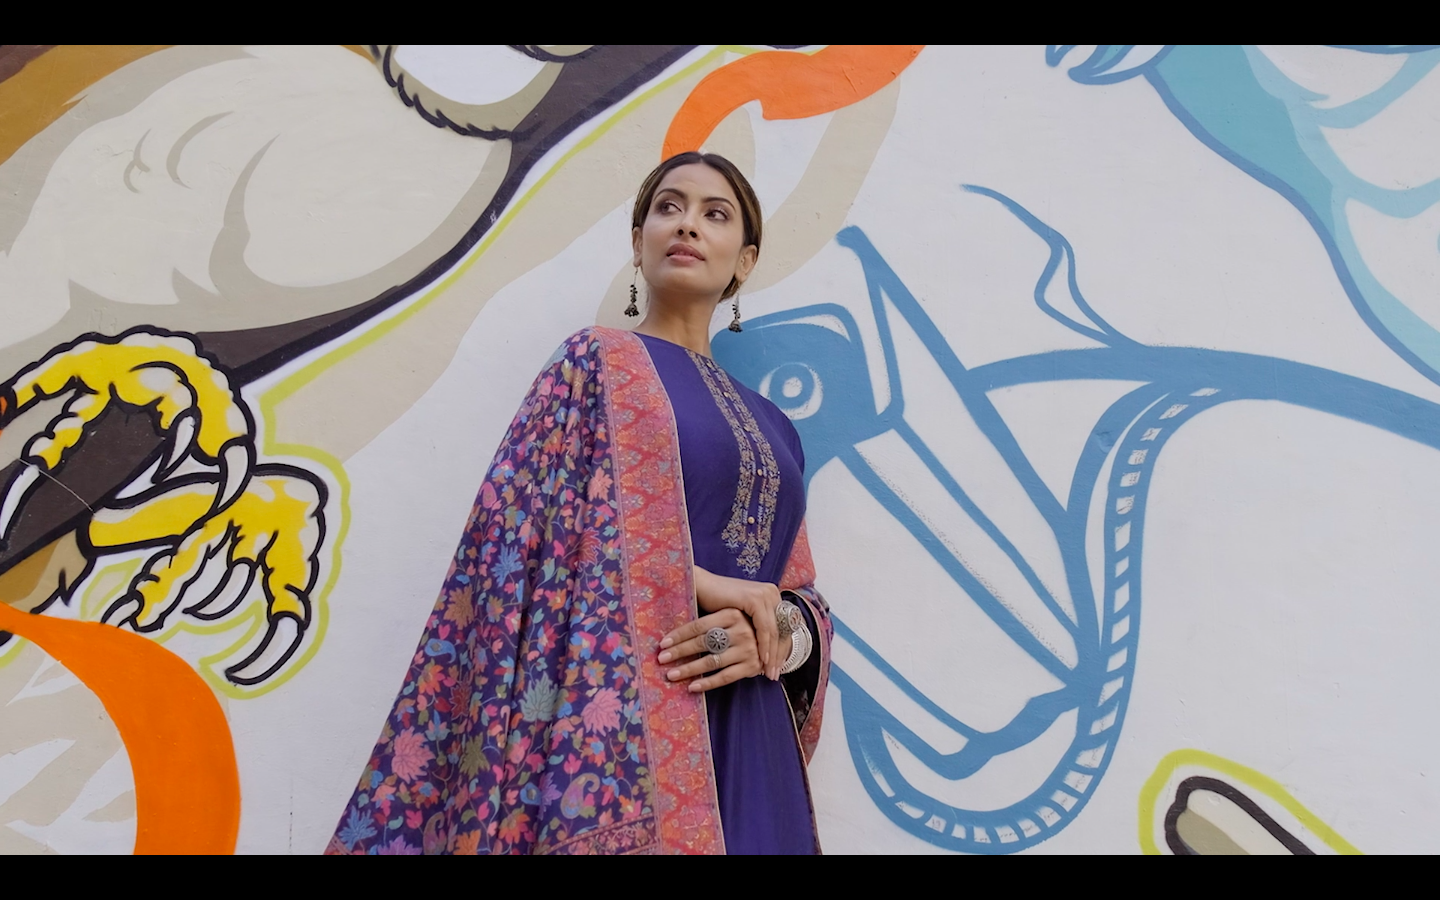 Unity of Culture, Diversity in Fabrics – Kashmir To Kerala A campaign & concept shoot by Studio Gaaba showcasing Label Varsha